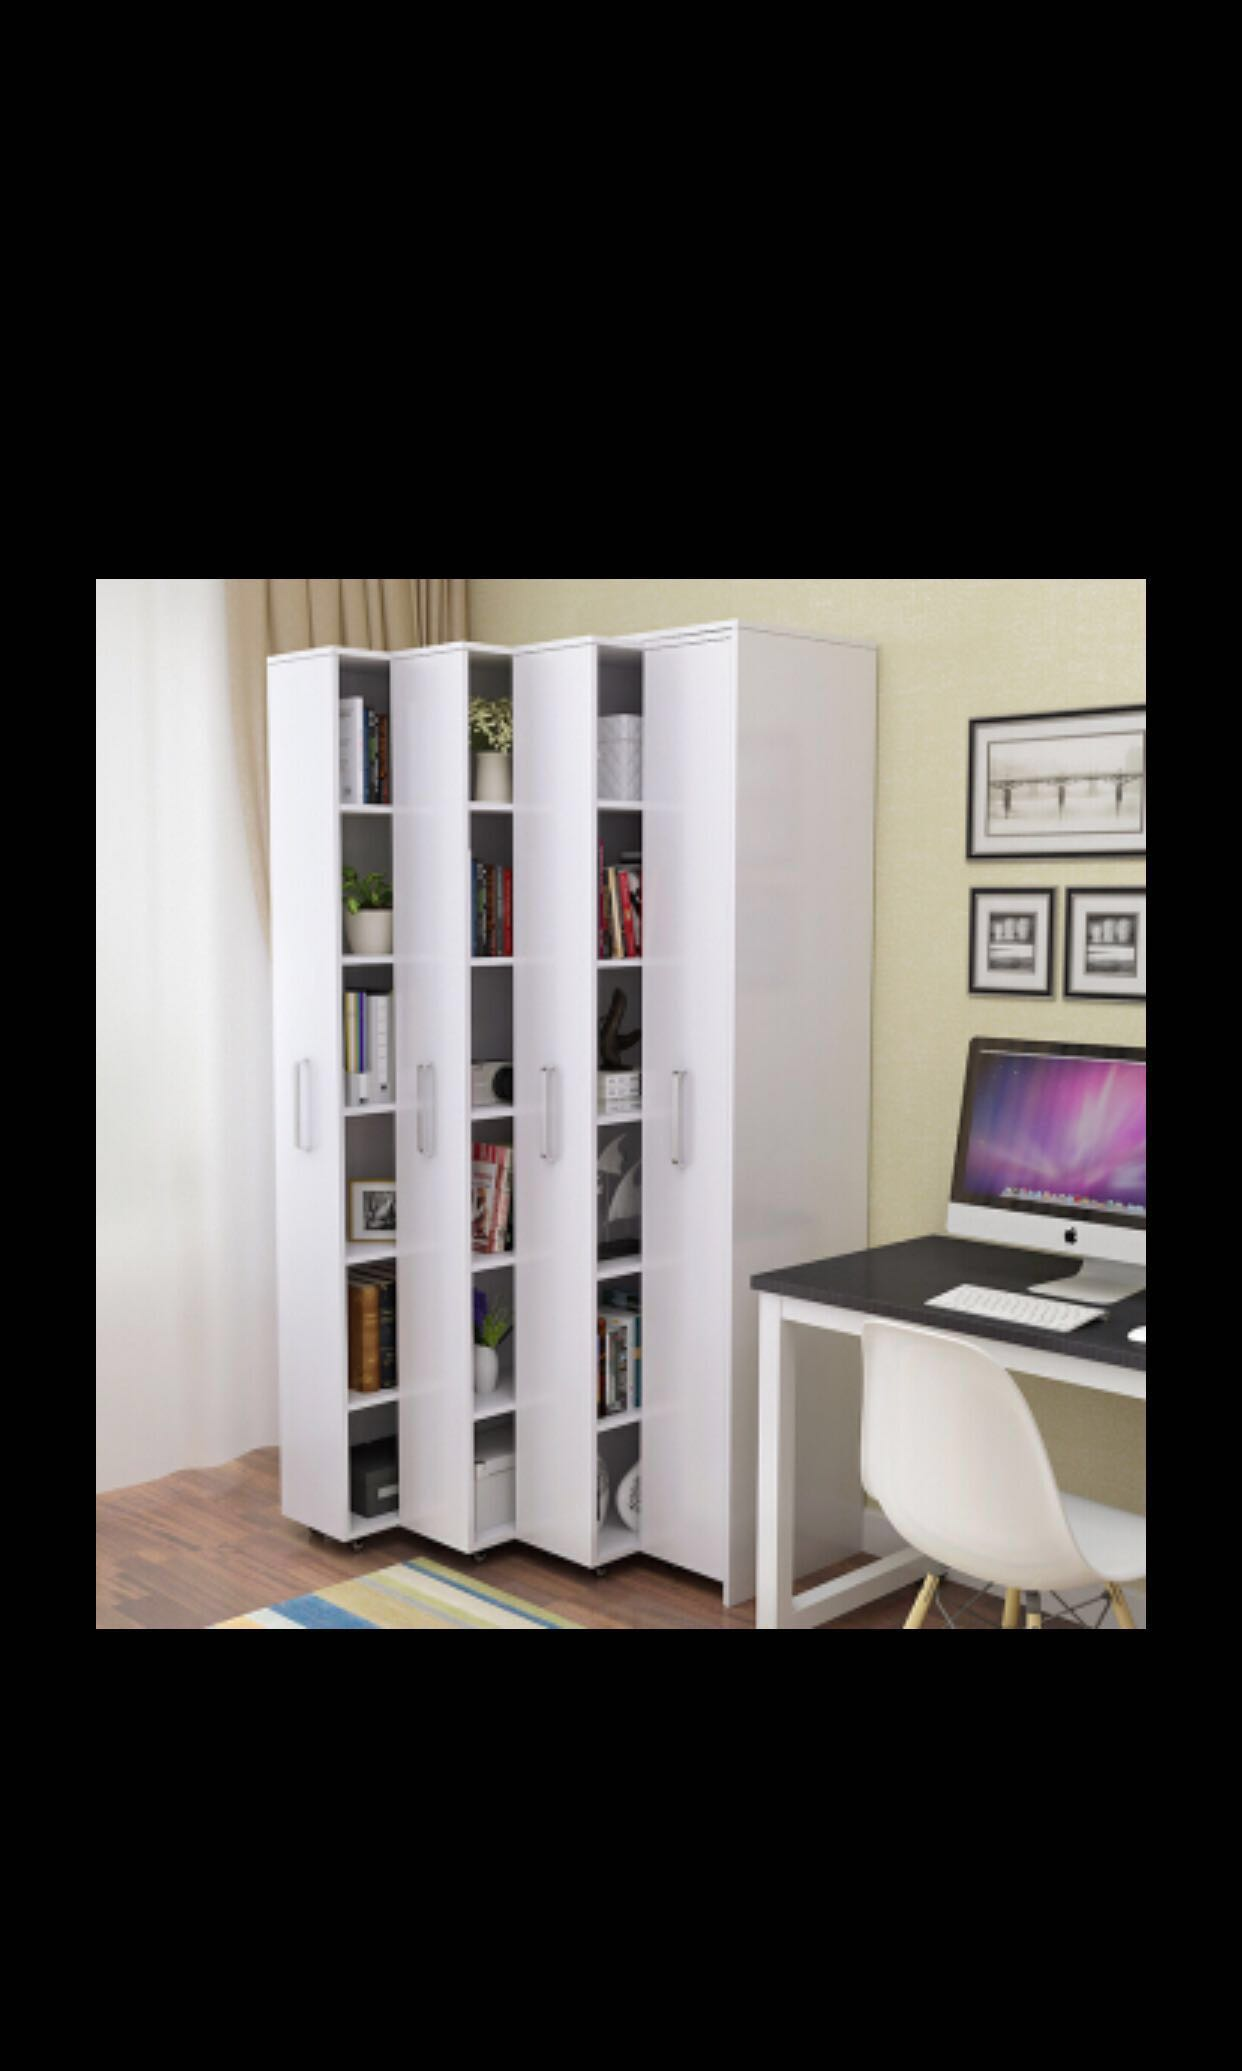 Preorder Drawers Push Pull Bookshelf Movable Bookcase Furniture Shelves On Carousell